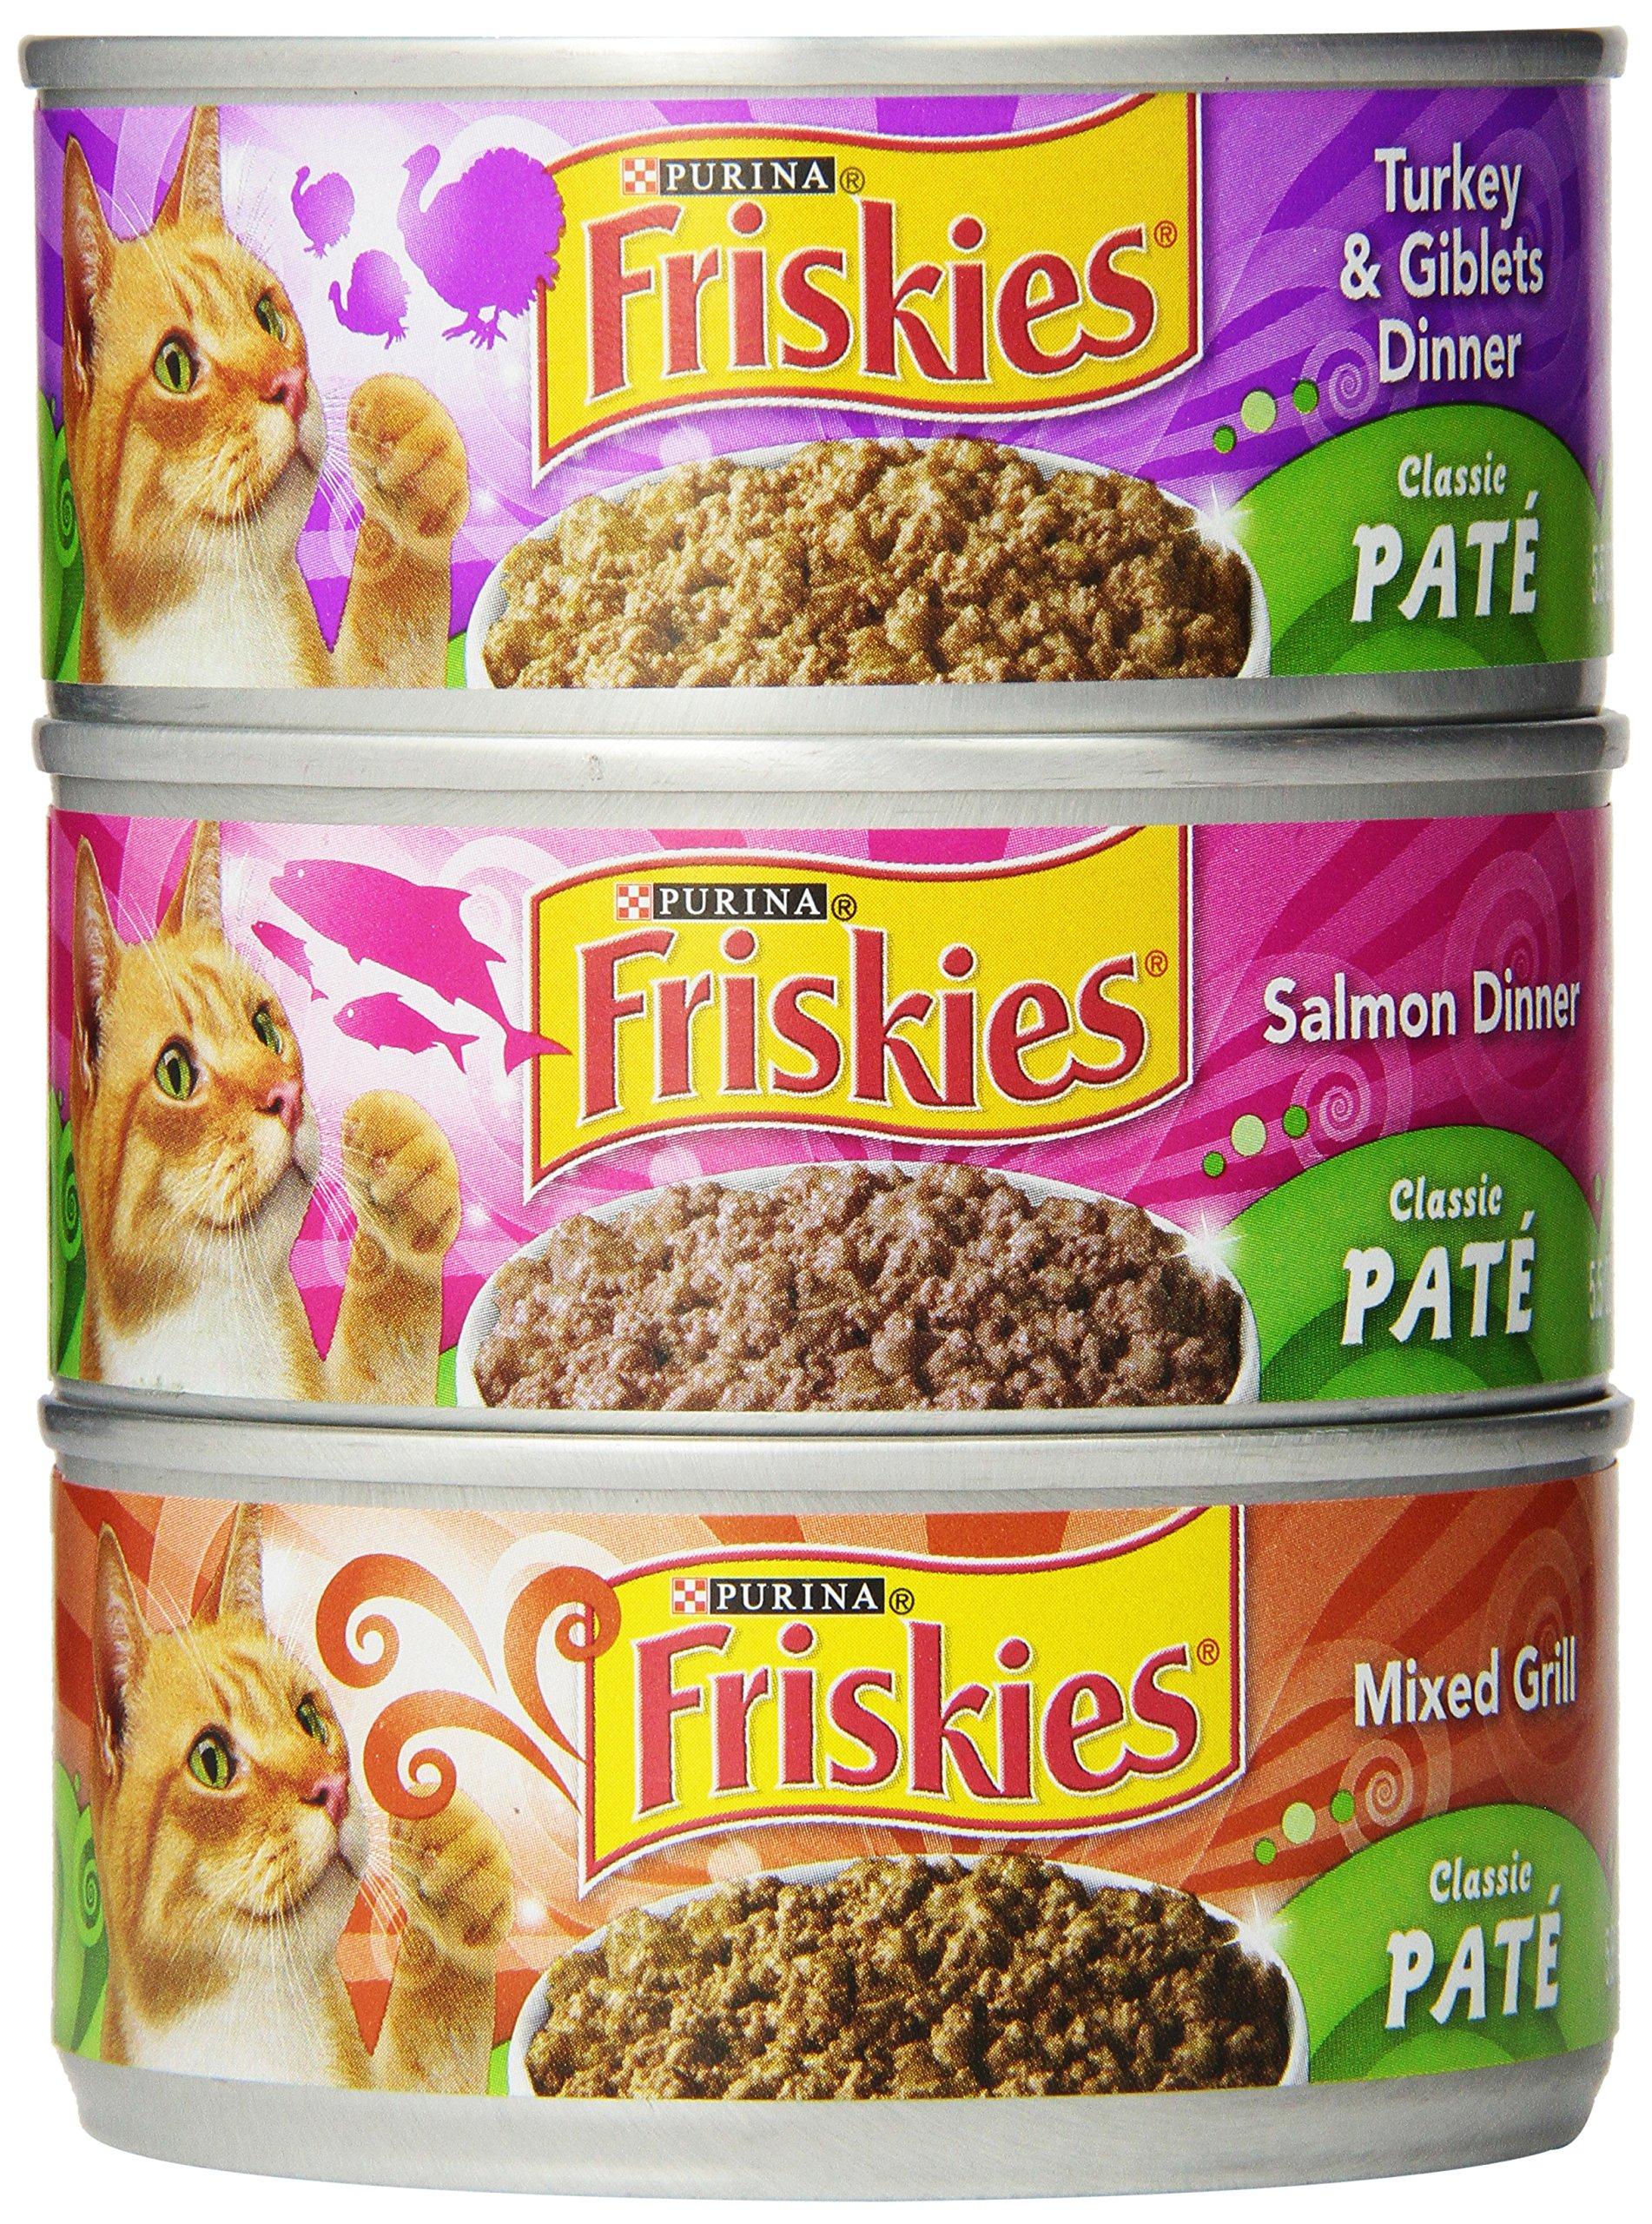 Purina Friskies Classic Pate Variety Pack Cat Food - (24) 9.4 lb. Box